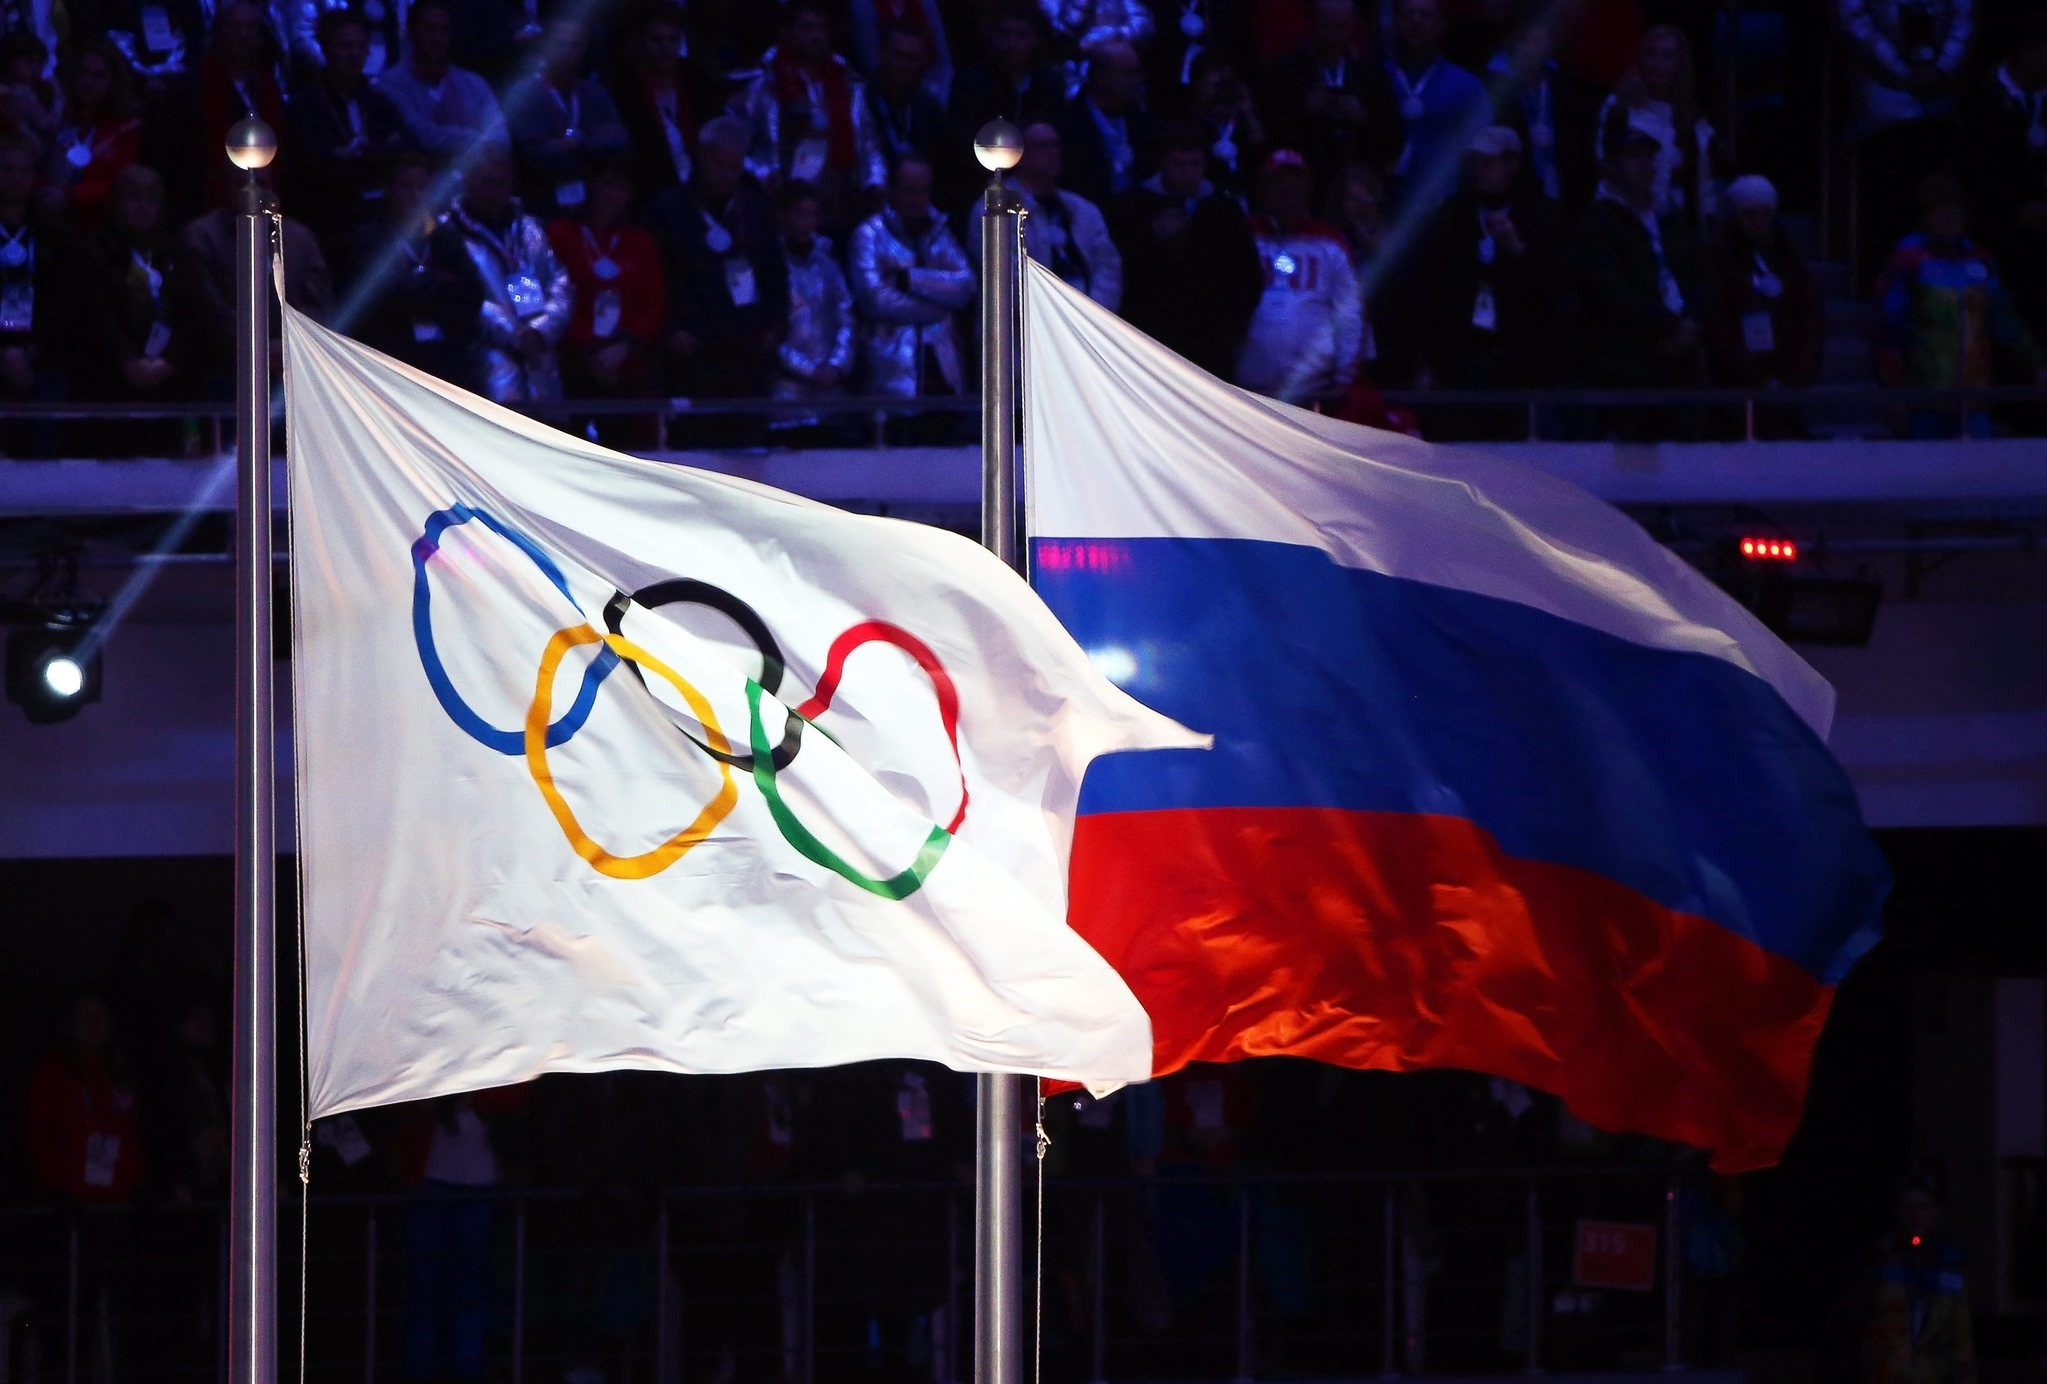 A file picture dated 23 February 2014 of the Olympic flag (L) and the Russian flag (R) during the Closing Ceremony of the Sochi 2014 Olympic Games in the Fisht Olympic Stadium in Sochi, Russia. (EPA Photo)